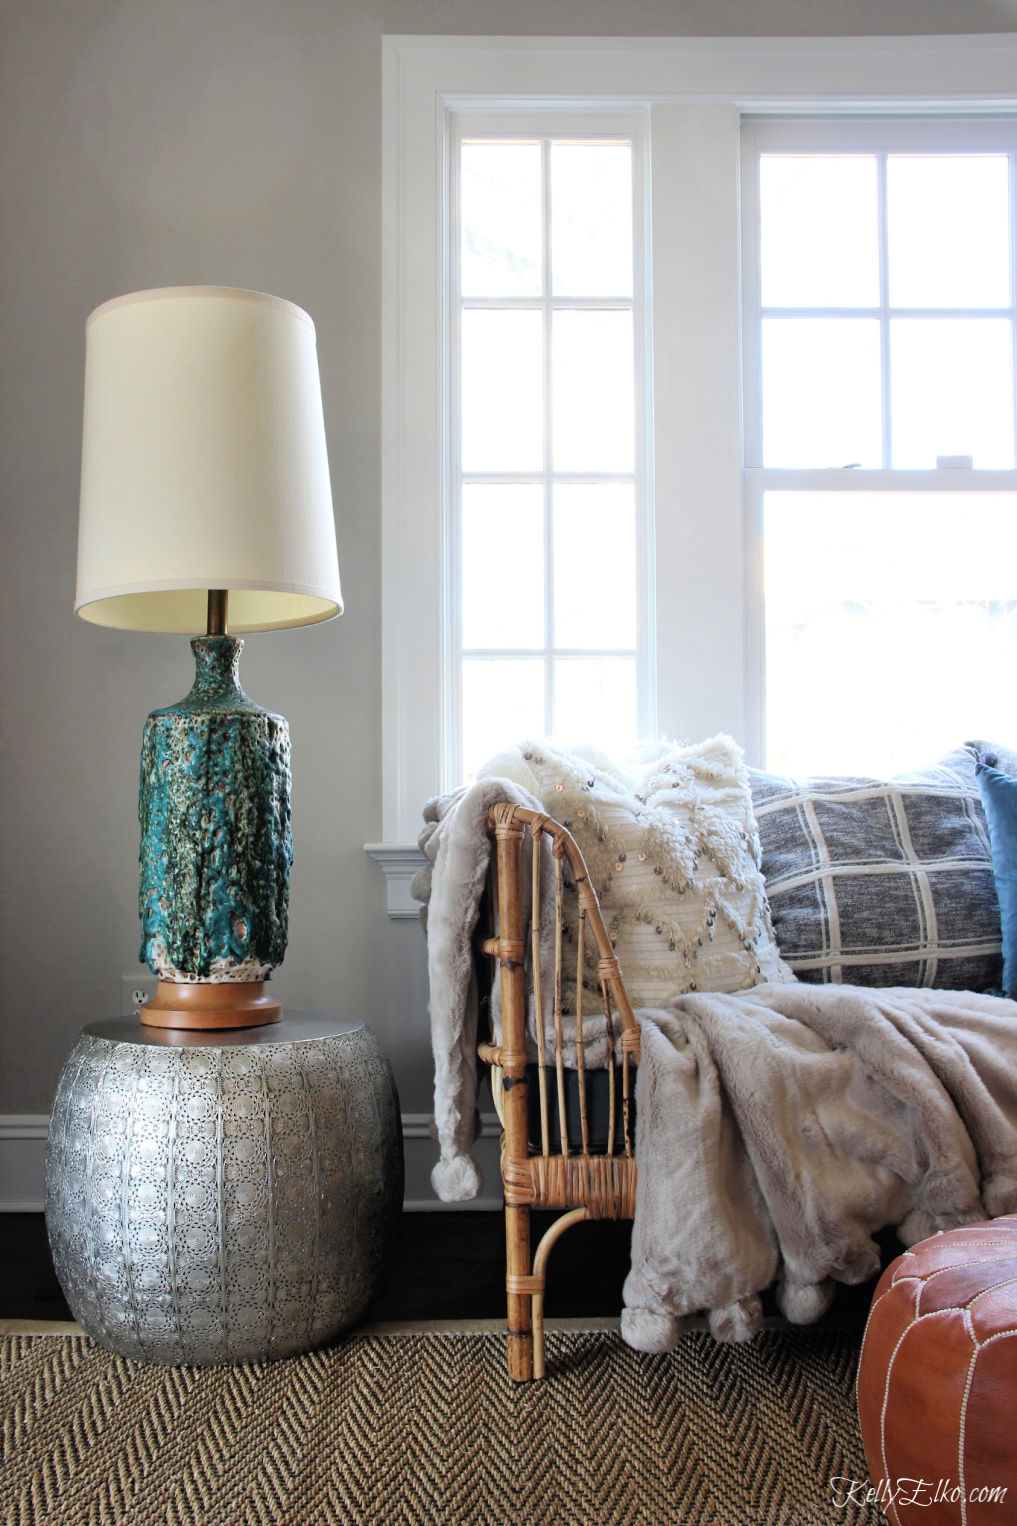 Love this mid century lava glaze lamp and rattan daybed kellyelko.com #vintagedecor #eclecticdecor #midcenturylamp #lighting #vintagelighting #brutalist #bohodecor #cozydecor #farmhousedecor #fixerupperstyle #kellyelko #furnitureplacement